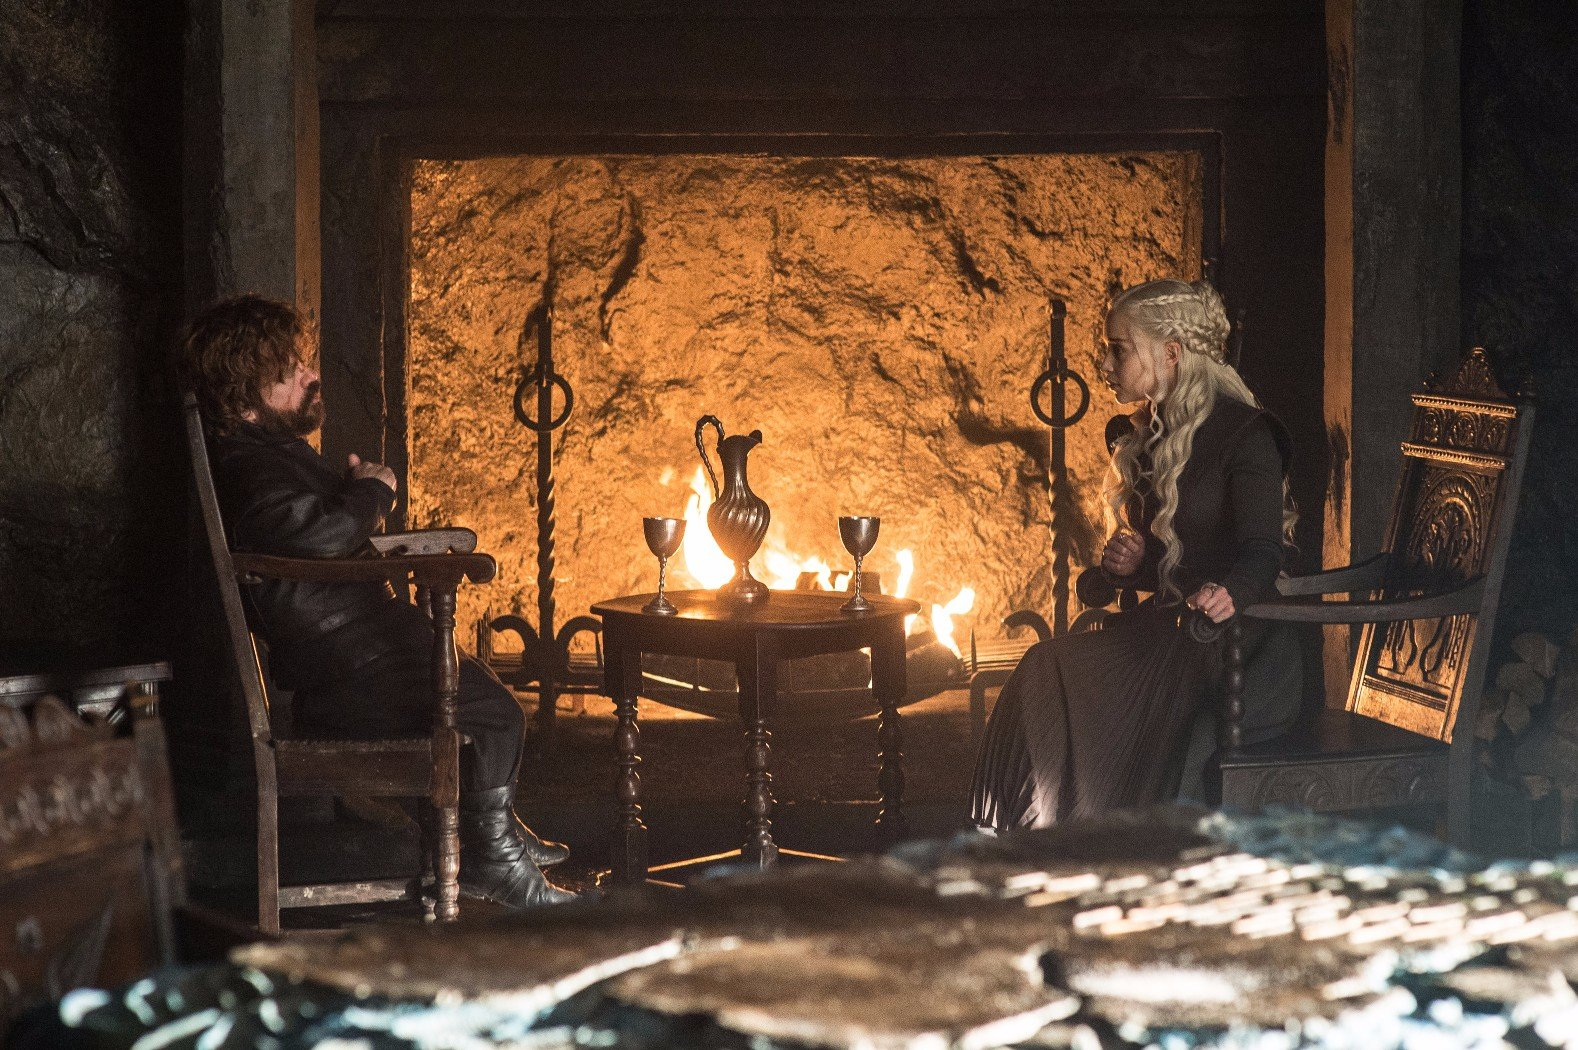 Prepare For Sunday's Grand Finale With Last Promo For Game Of Thrones Season 7